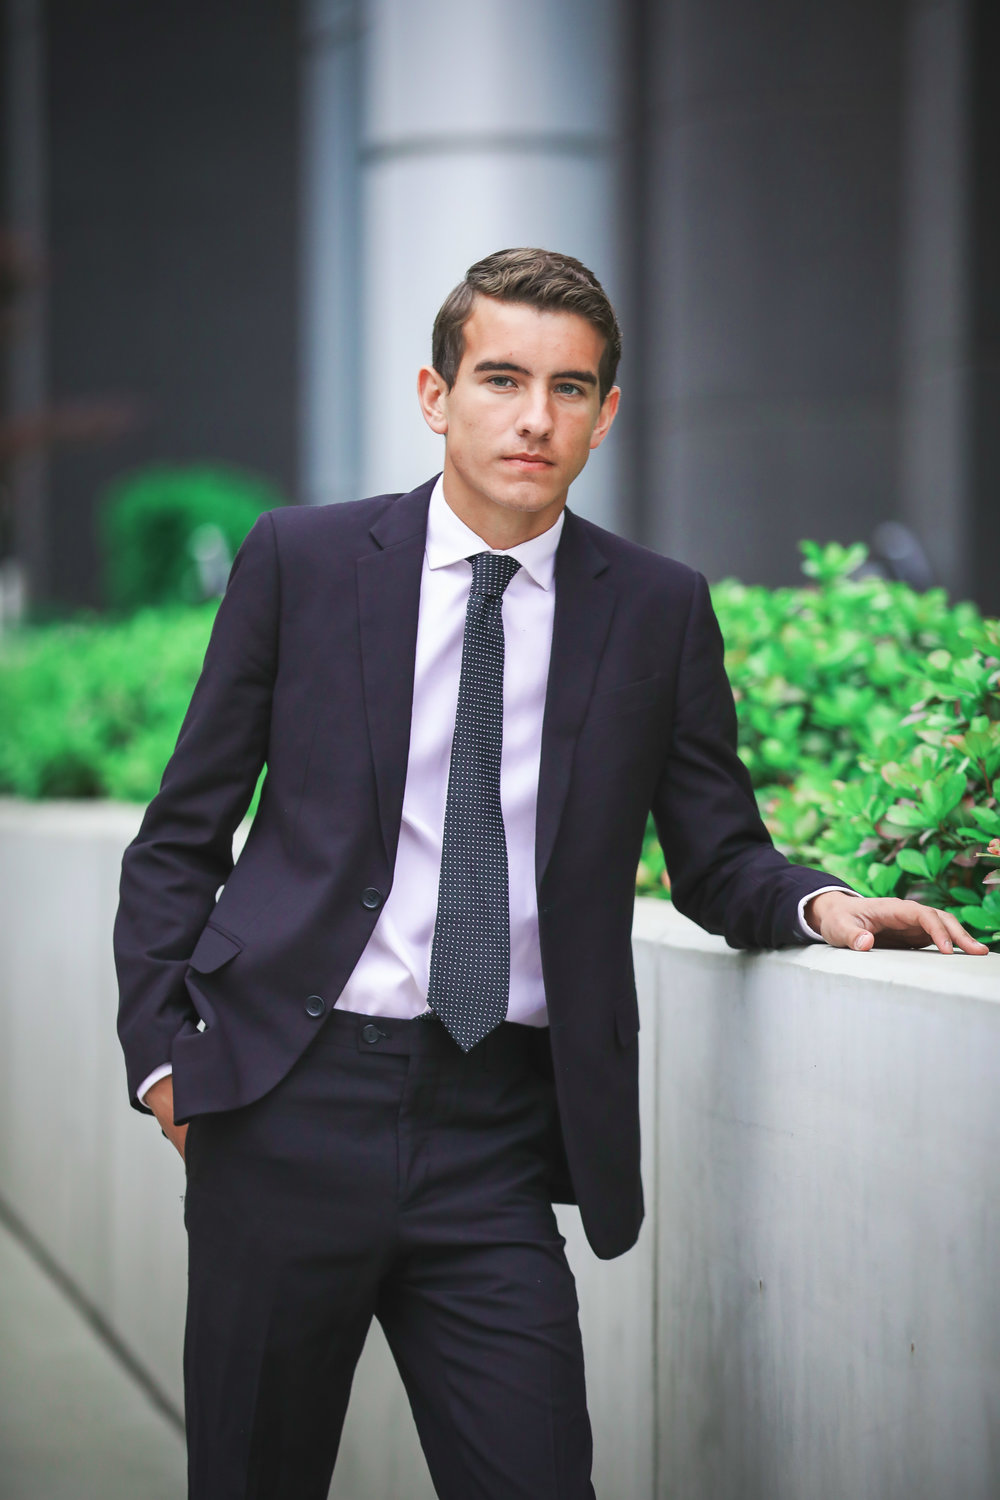 high school senior boy wearing black suit and tie, leaning on concrete wall in downtown oklahoma city